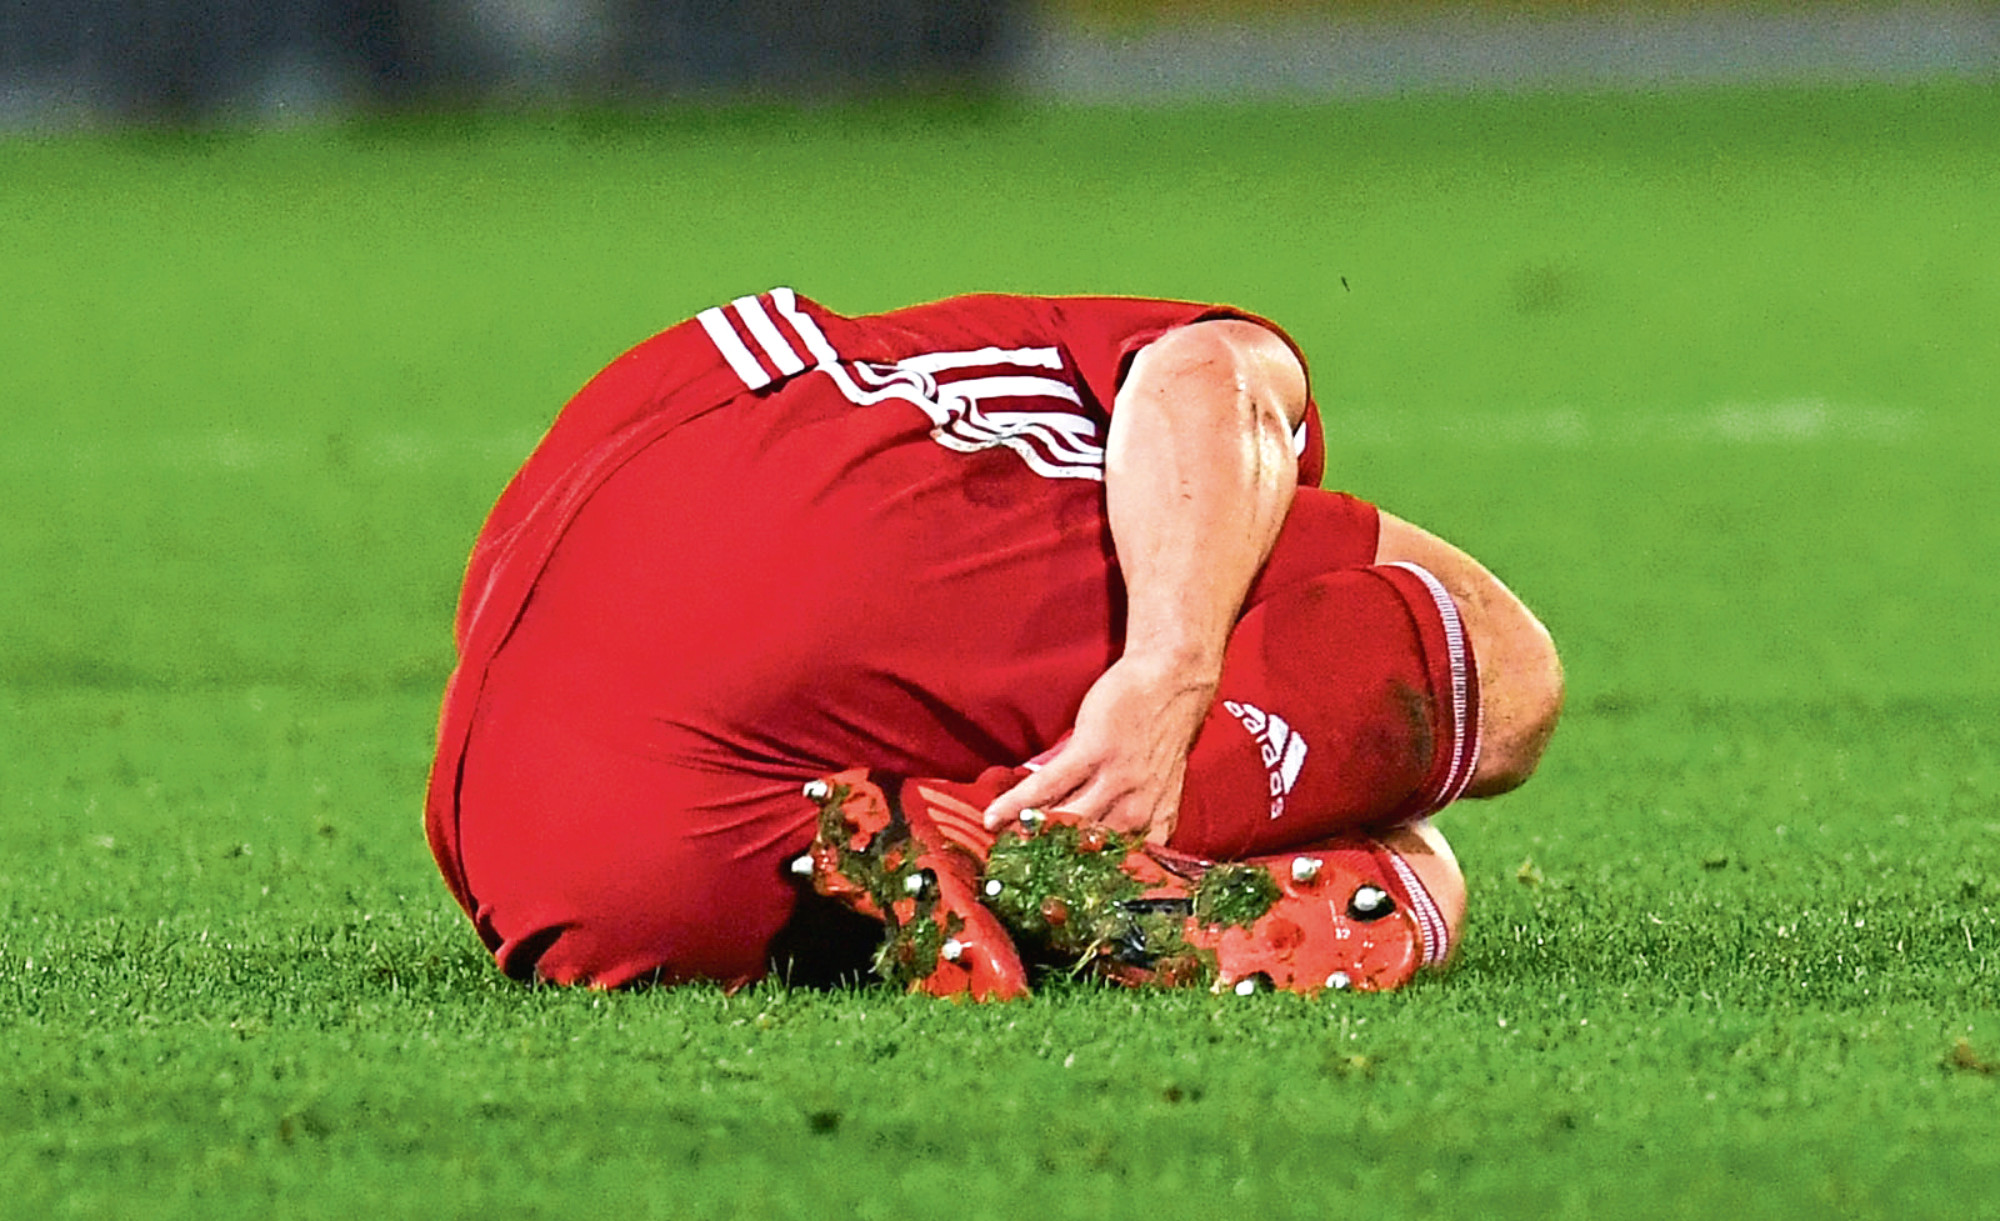 Aberdeen's Craig Bryson lies on the McDiarmid Park turf after a tackle from St Johnstone's Murray Davidson. The Saints player was dismissed as a result.